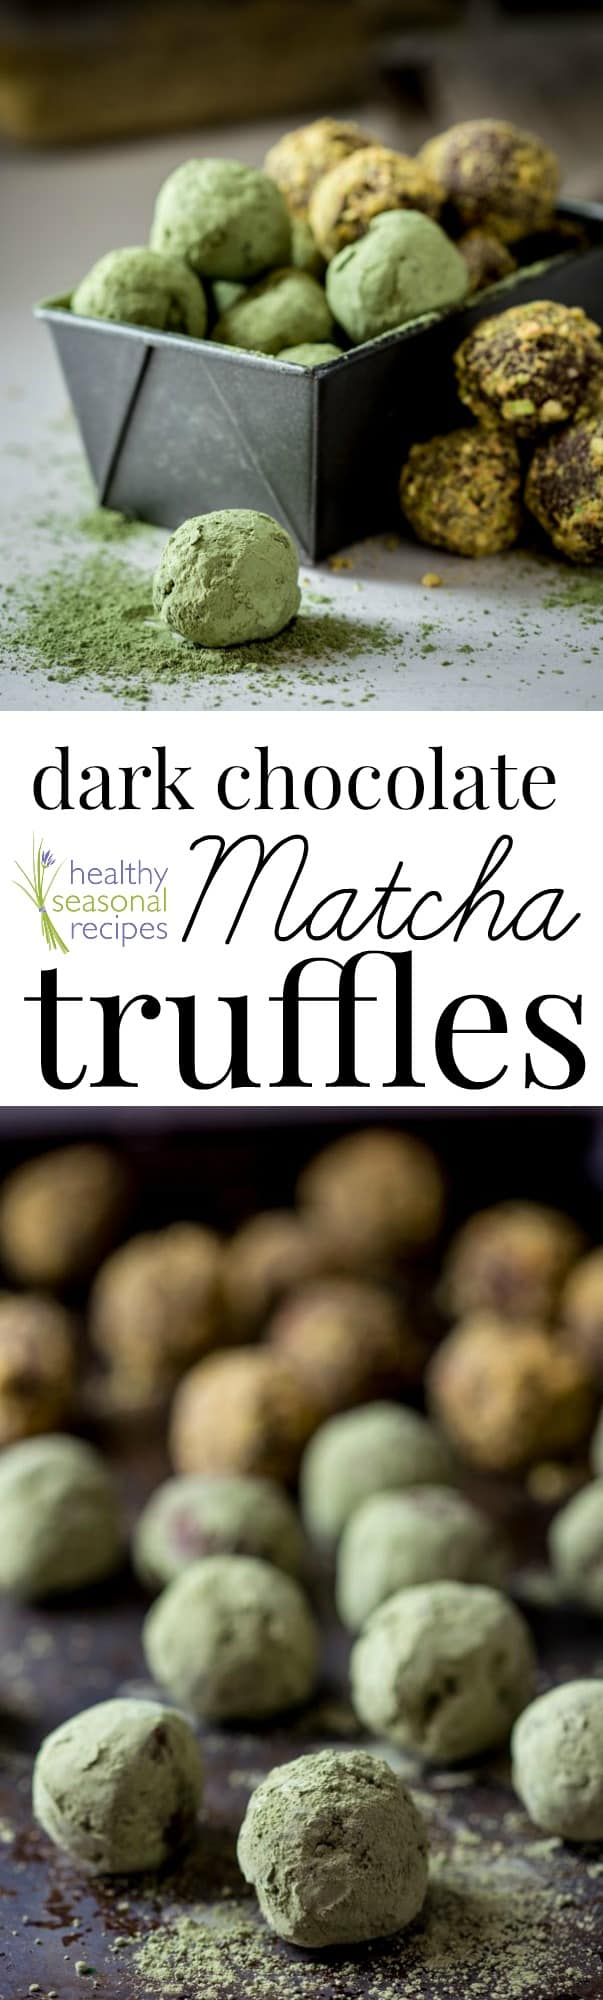 These 5-ingredient dark chocolate truffles include one flavorful secret ingredient: matcha! These truffles make for a great gift around the holidays. #matcha #chocolate #darkchocolate #truffles #dessert #easy #dessertrecipe